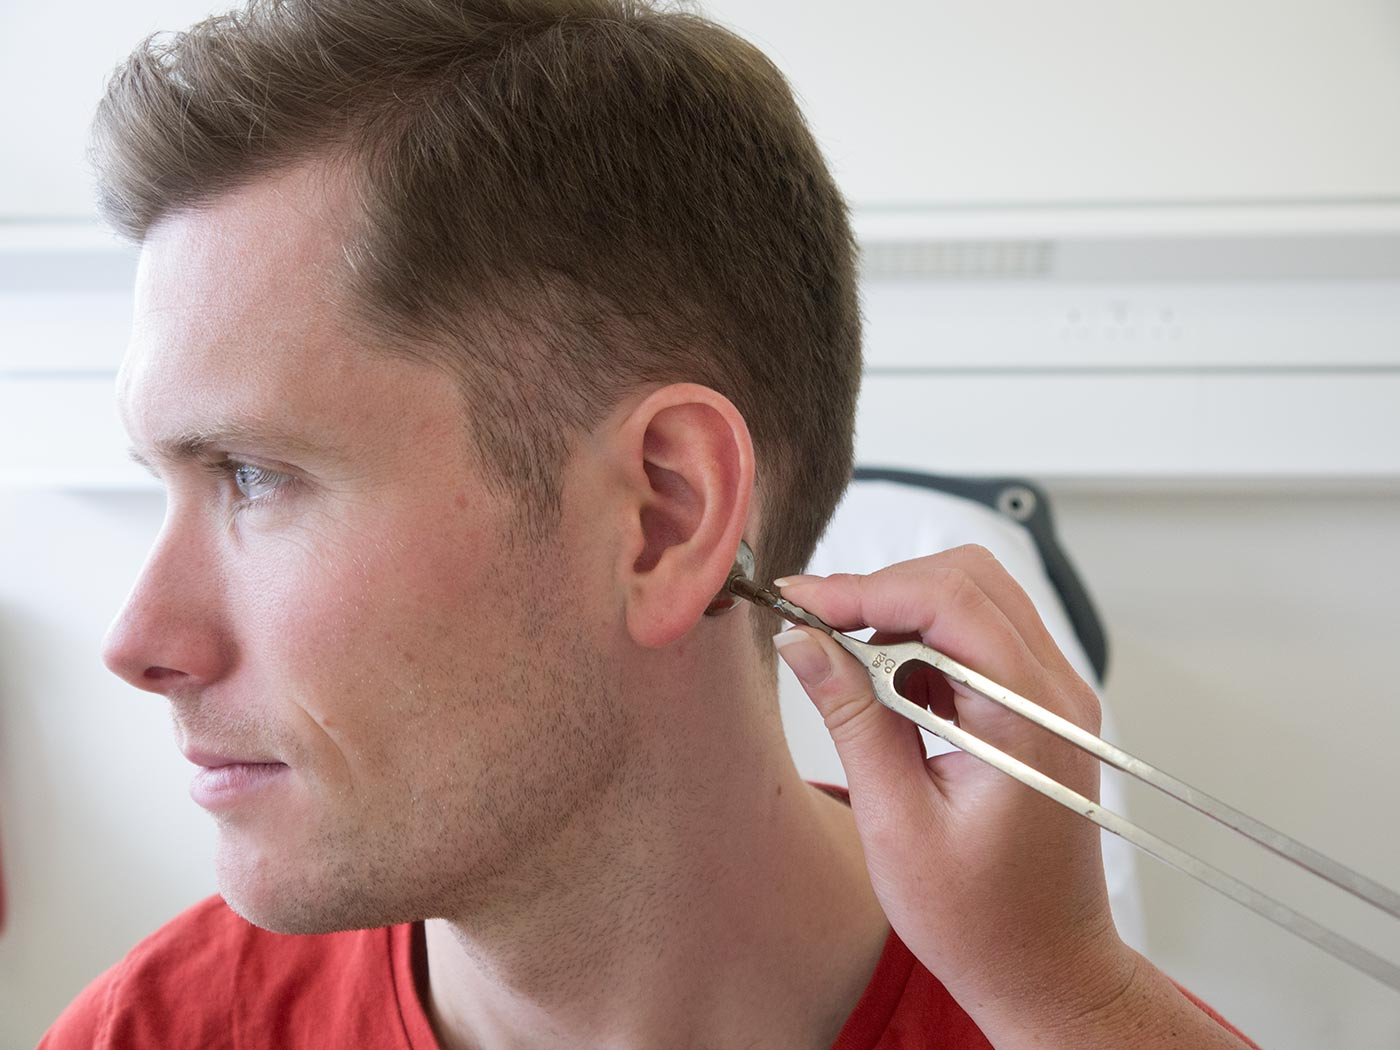 Rinne test - place tuning fork on the mastoid process